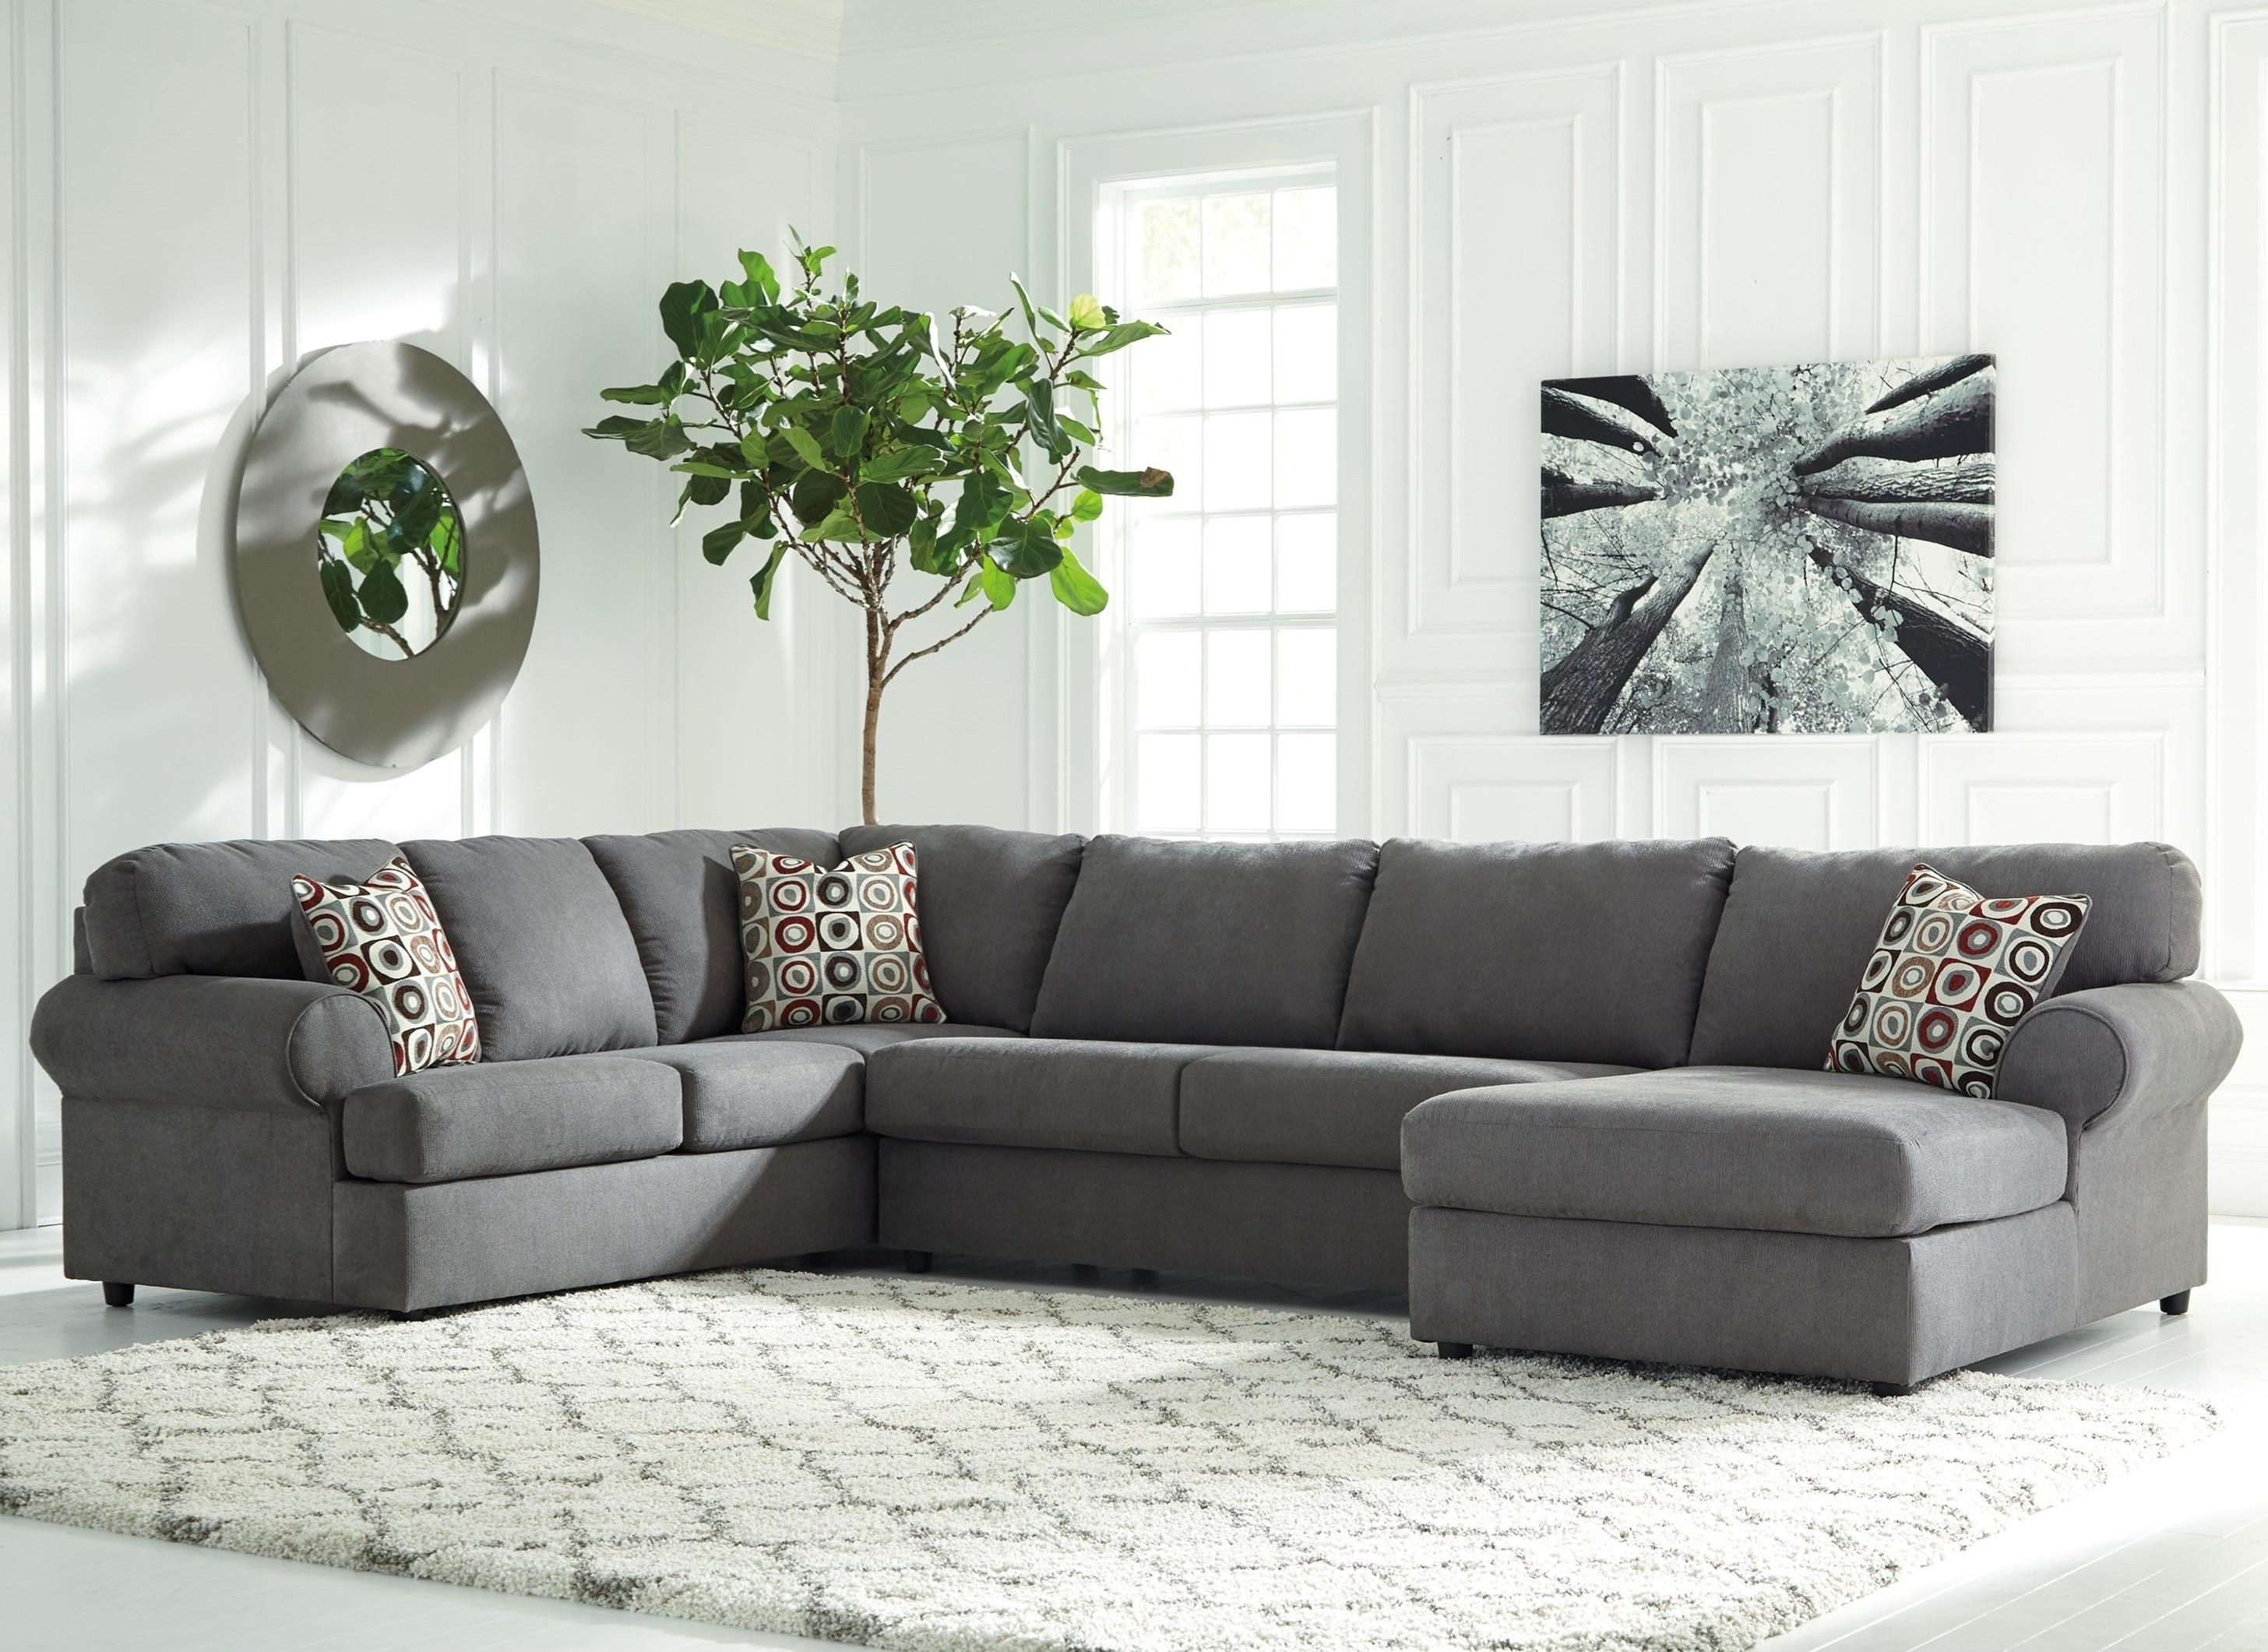 Signature Designashley Jayceon 3 Piece Sectional With Left Throughout Fashionable Left Chaise Sectionals (View 11 of 15)